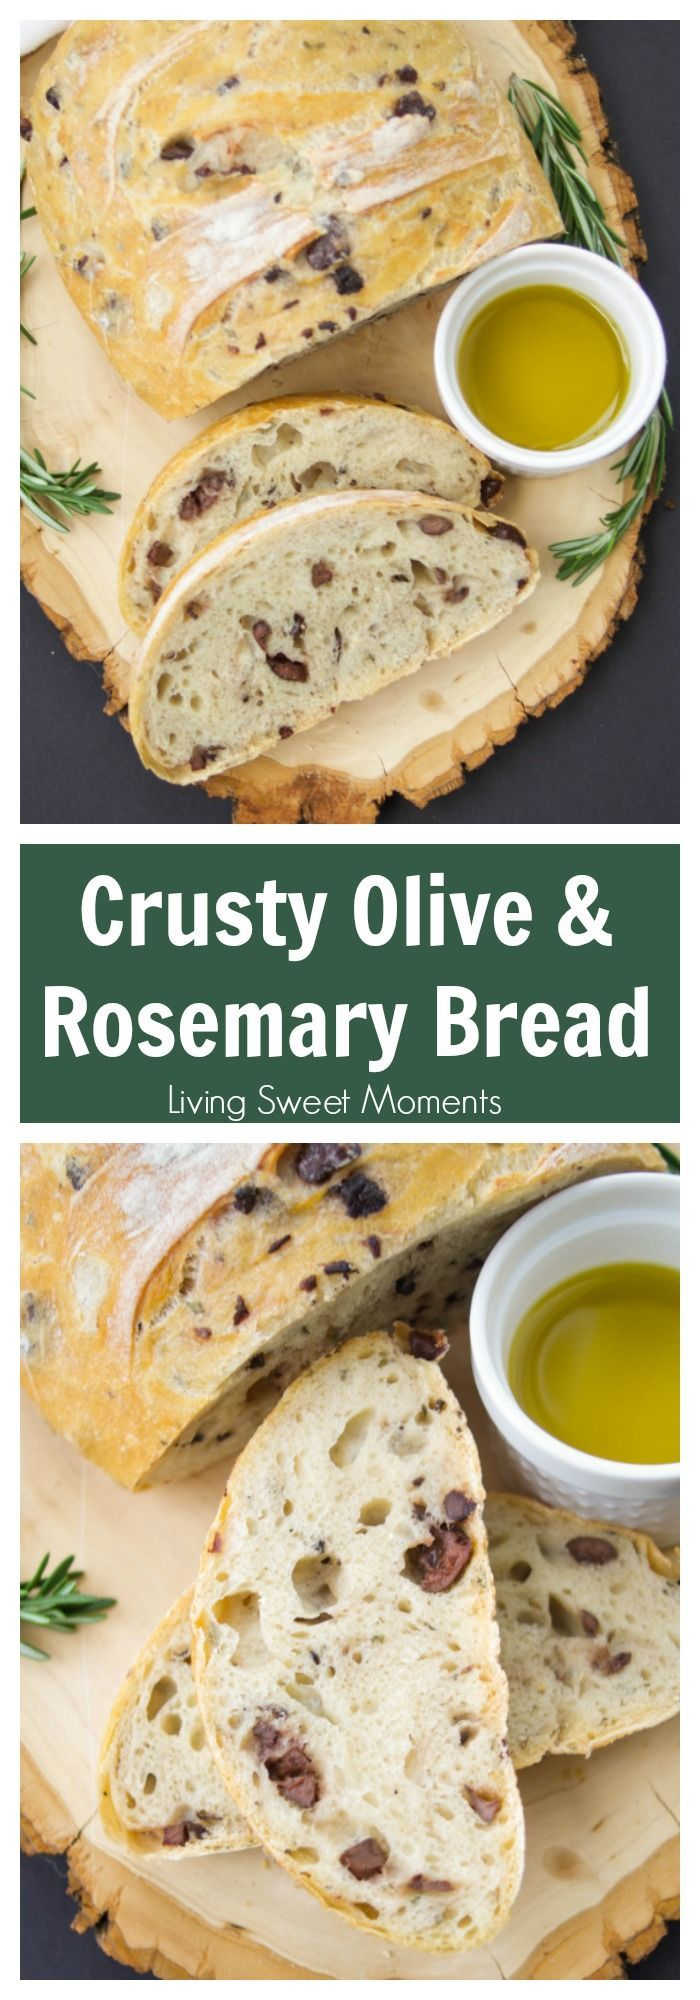 This amazing Rosemary Olive Bread Recipe has a nice crust on the outside and chewy on the inside. Better than any bakery. Enjoy a few slices with olive oil. More bread recipes at livingsweetmoments.com via @Livingsmoments